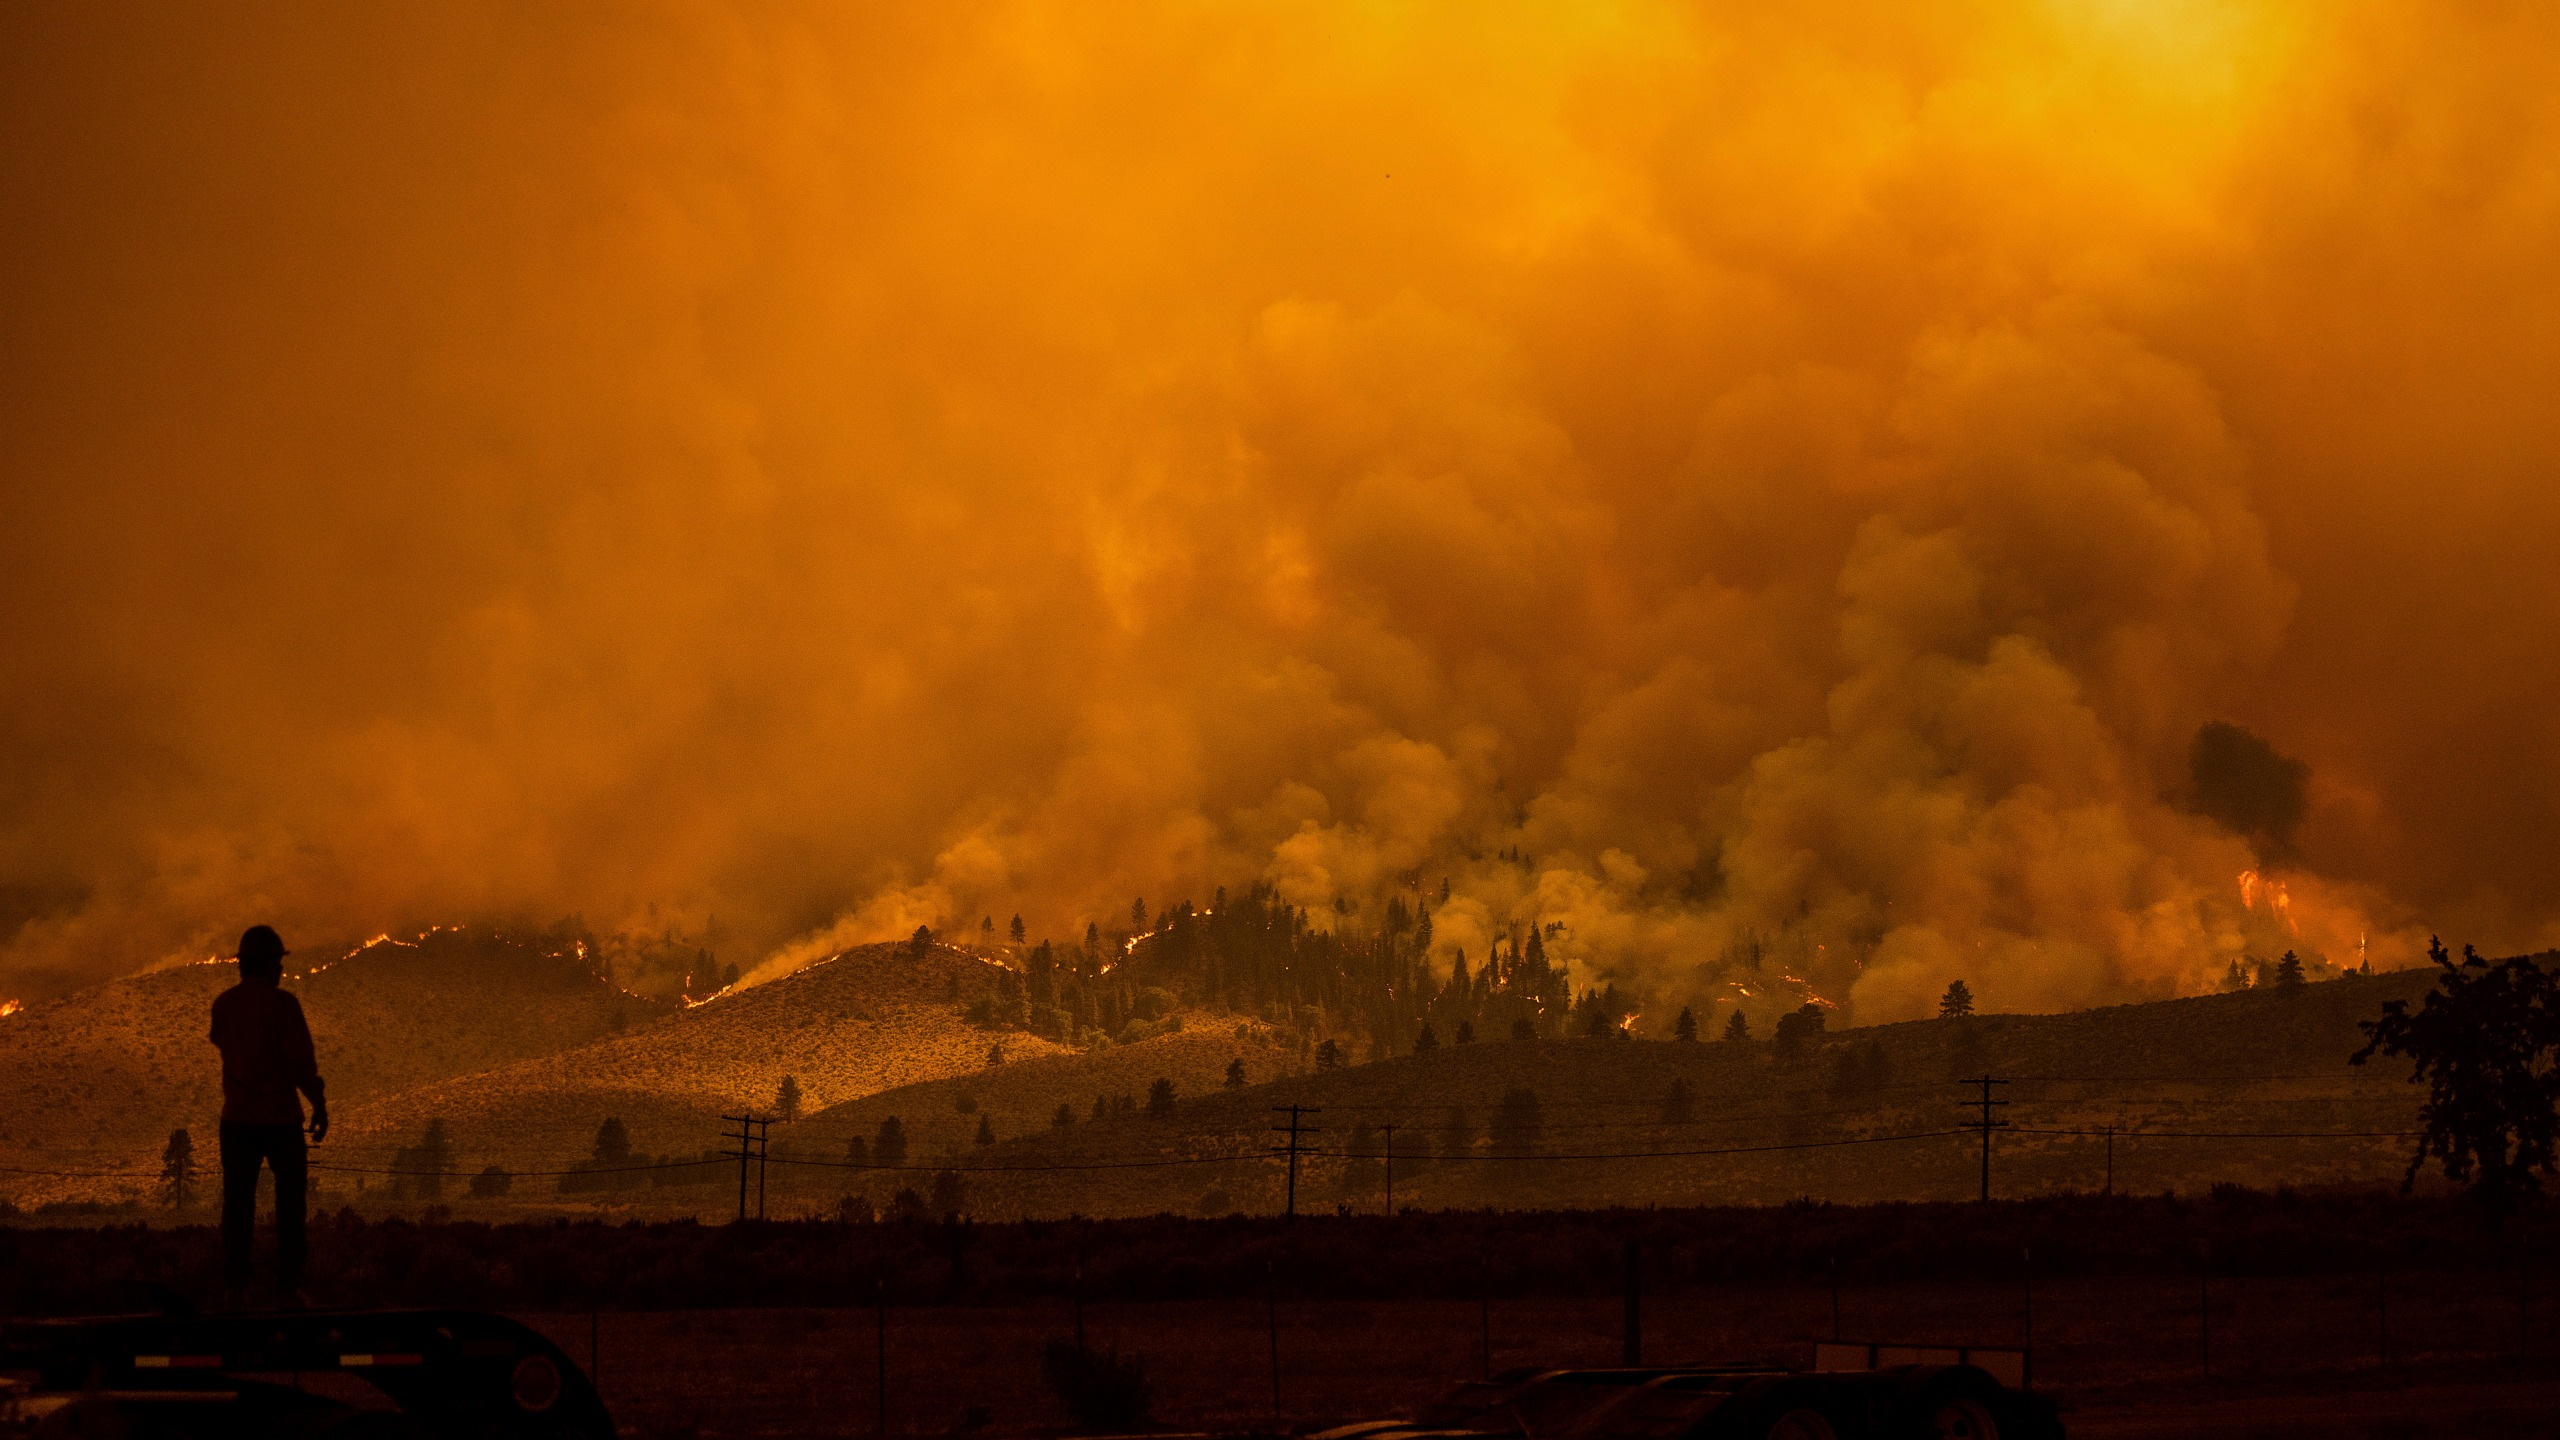 A truck driver who hauls fire equipment watches as the Sugar Fire, part of the Beckwourth Complex Fire, burns in Doyle, Calif., on Saturday, July 10, 2021. (AP Photo/Noah Berger)